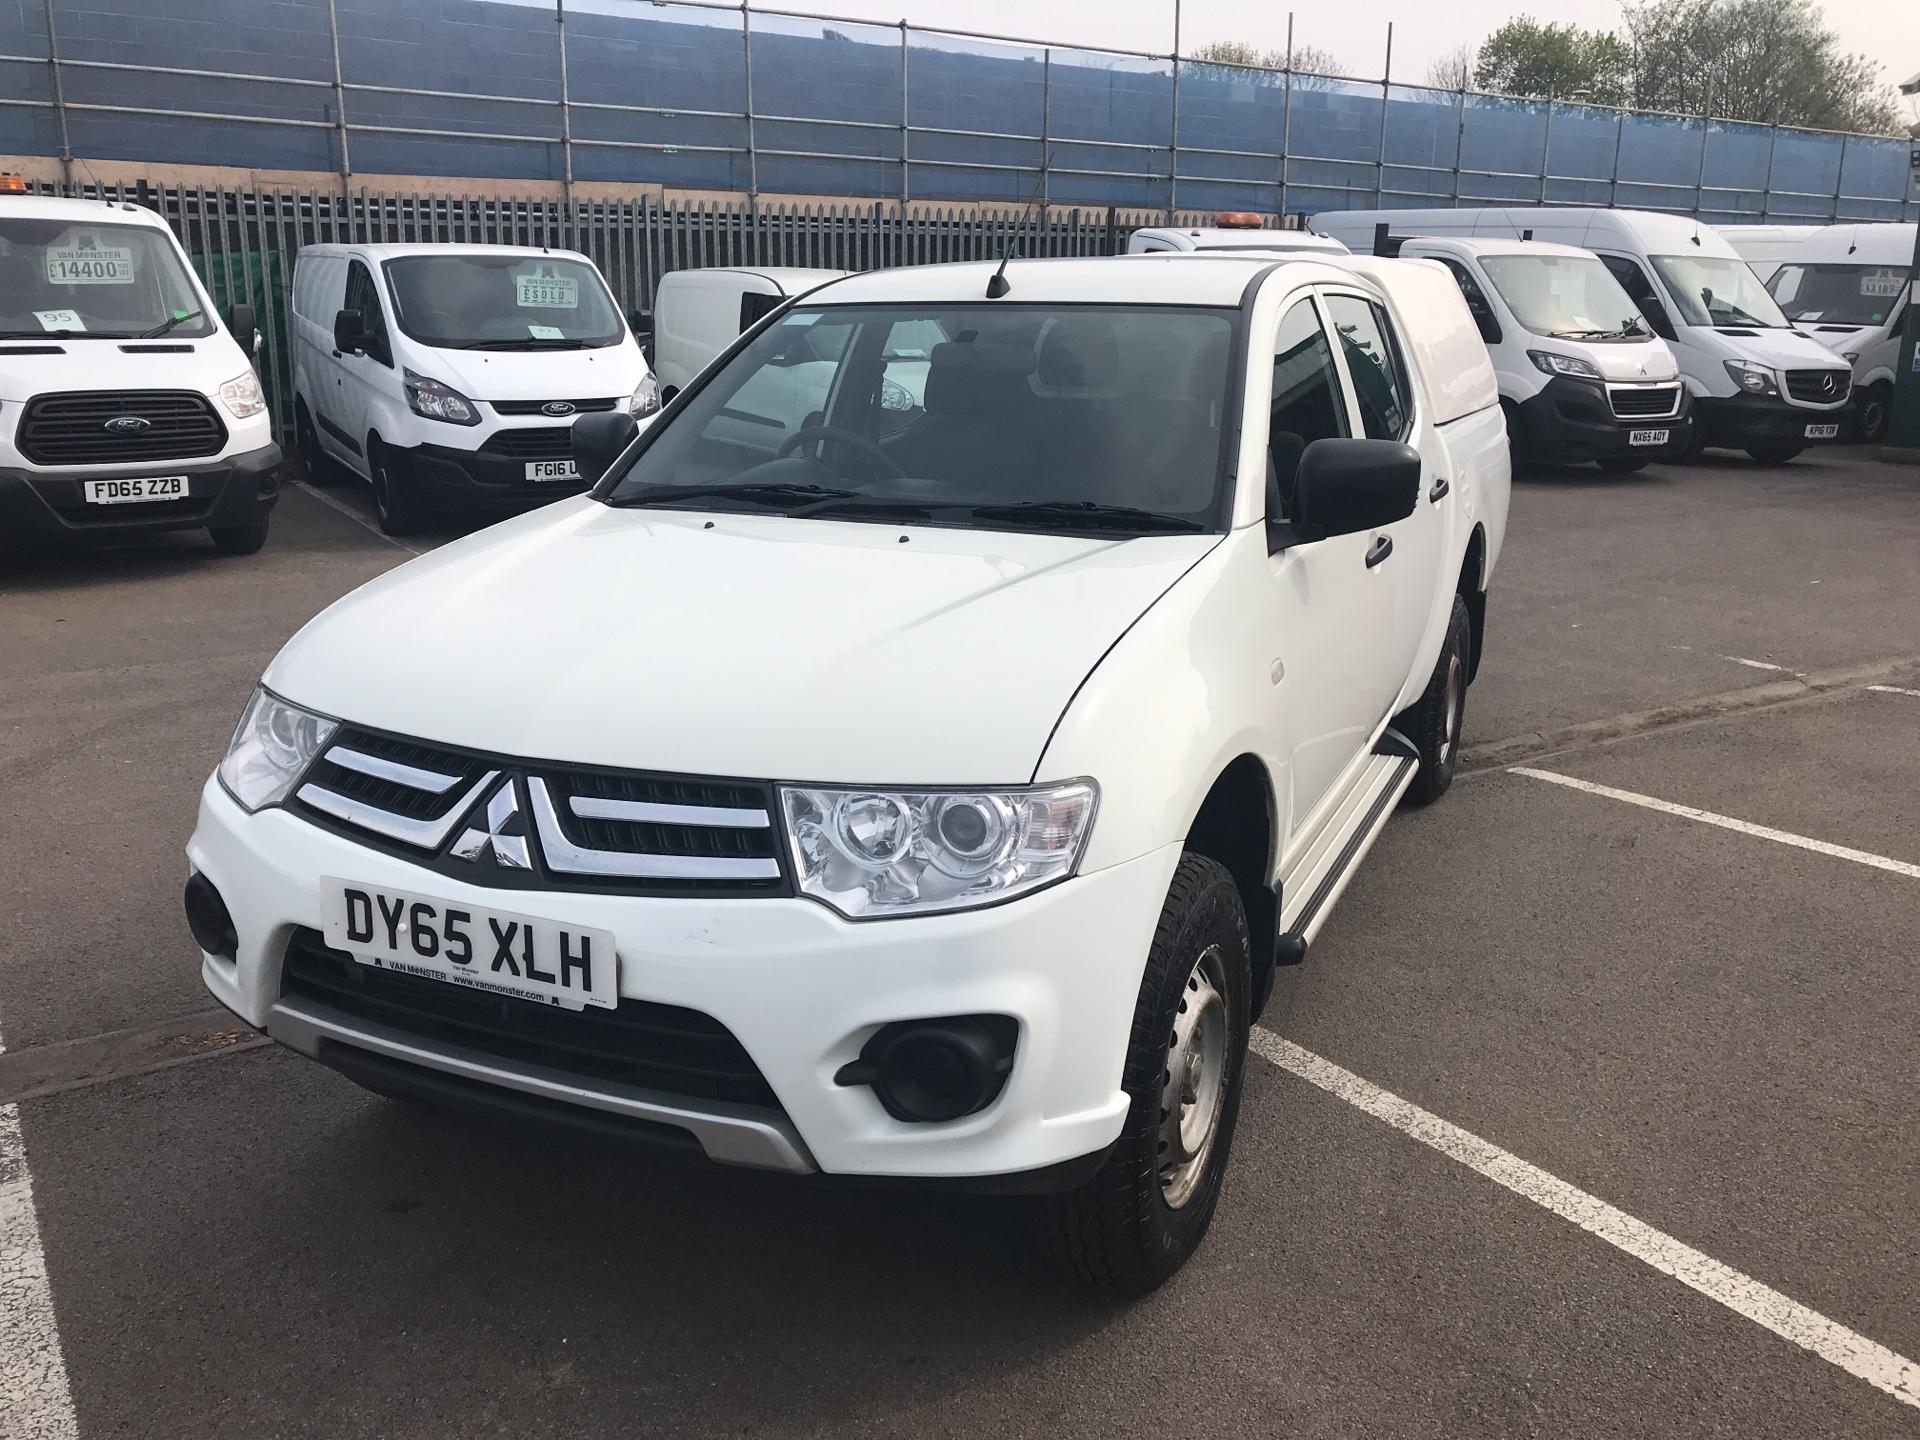 2015 Mitsubishi L200 Double Cab Di-D 4Life 4Wd 134Bhp *VALUE RANGE VEHICLE CONDITION REFLECTED IN PRICE* (DY65XLH) Image 7